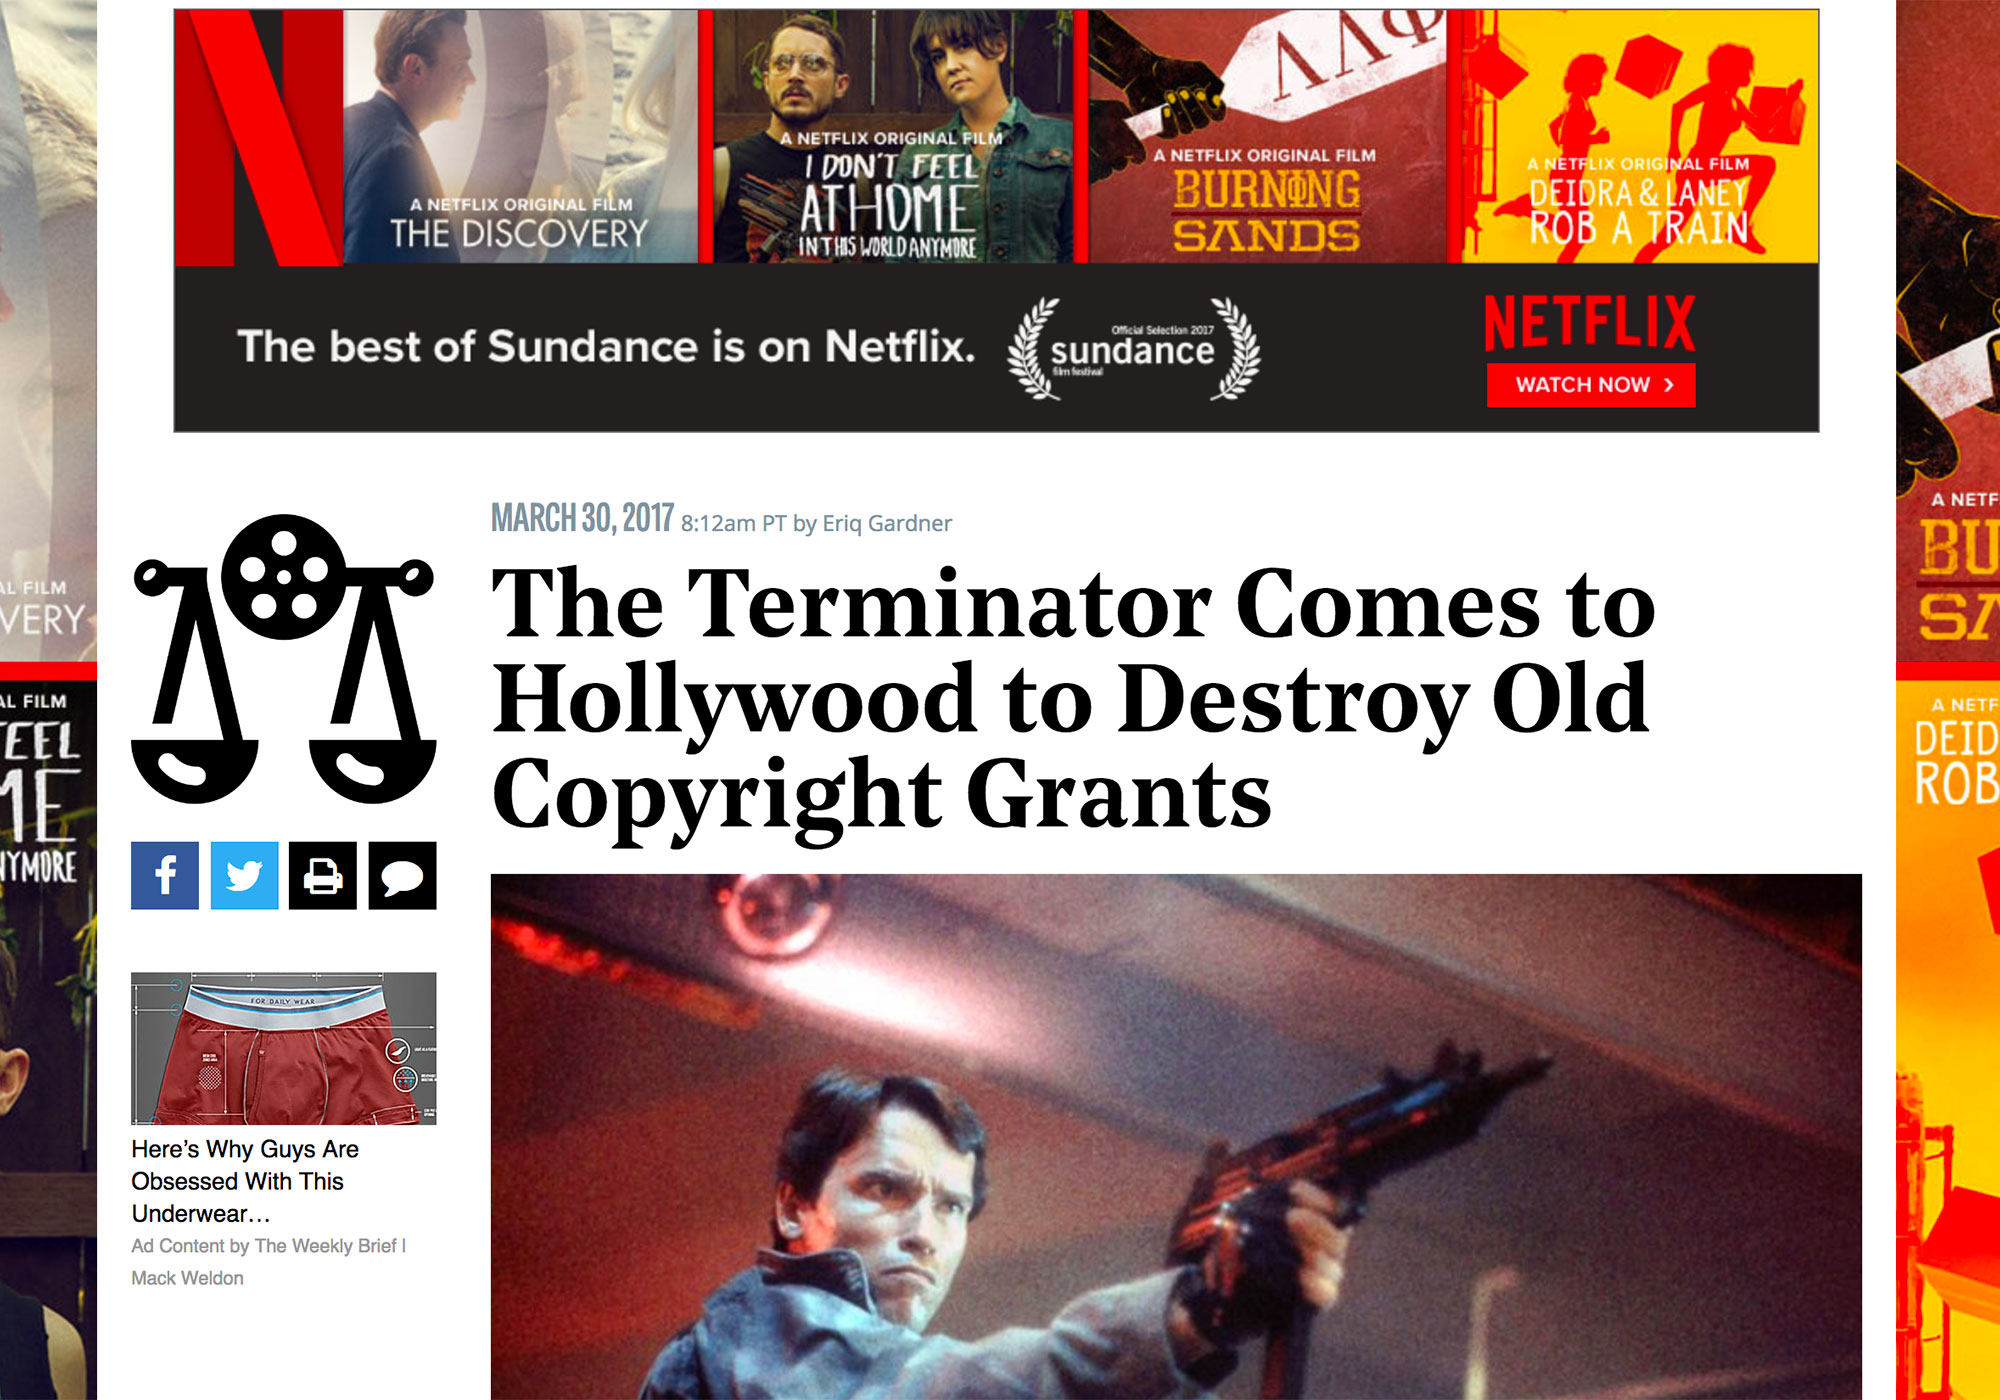 Fairness Rocks News The Terminator Comes to Hollywood to Destroy Old Copyright Grants